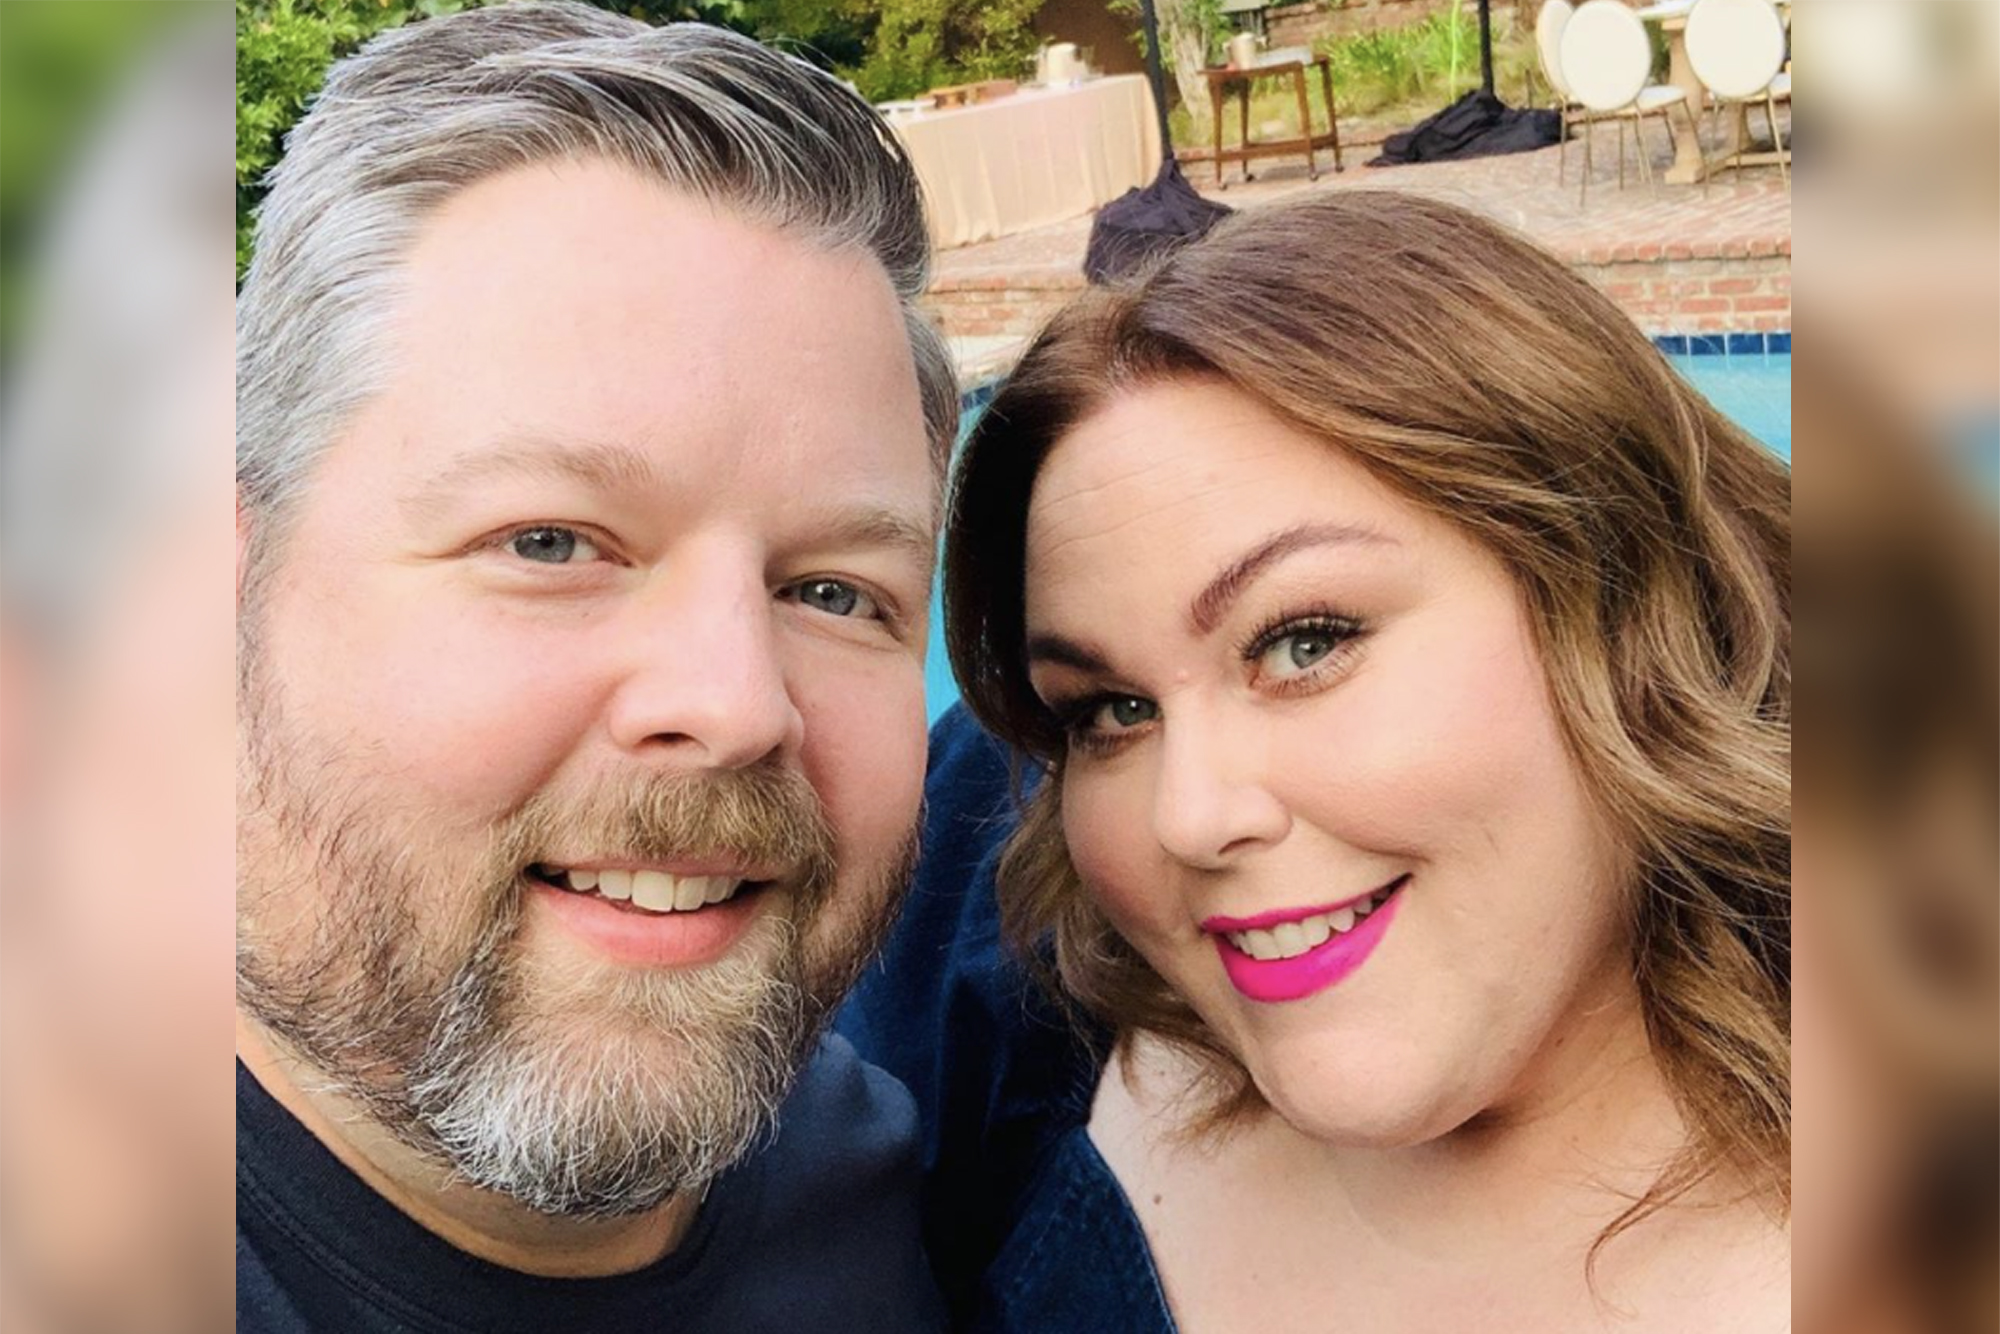 Chrissy Metz and new boyfriend Bradley Collins are Instagram official